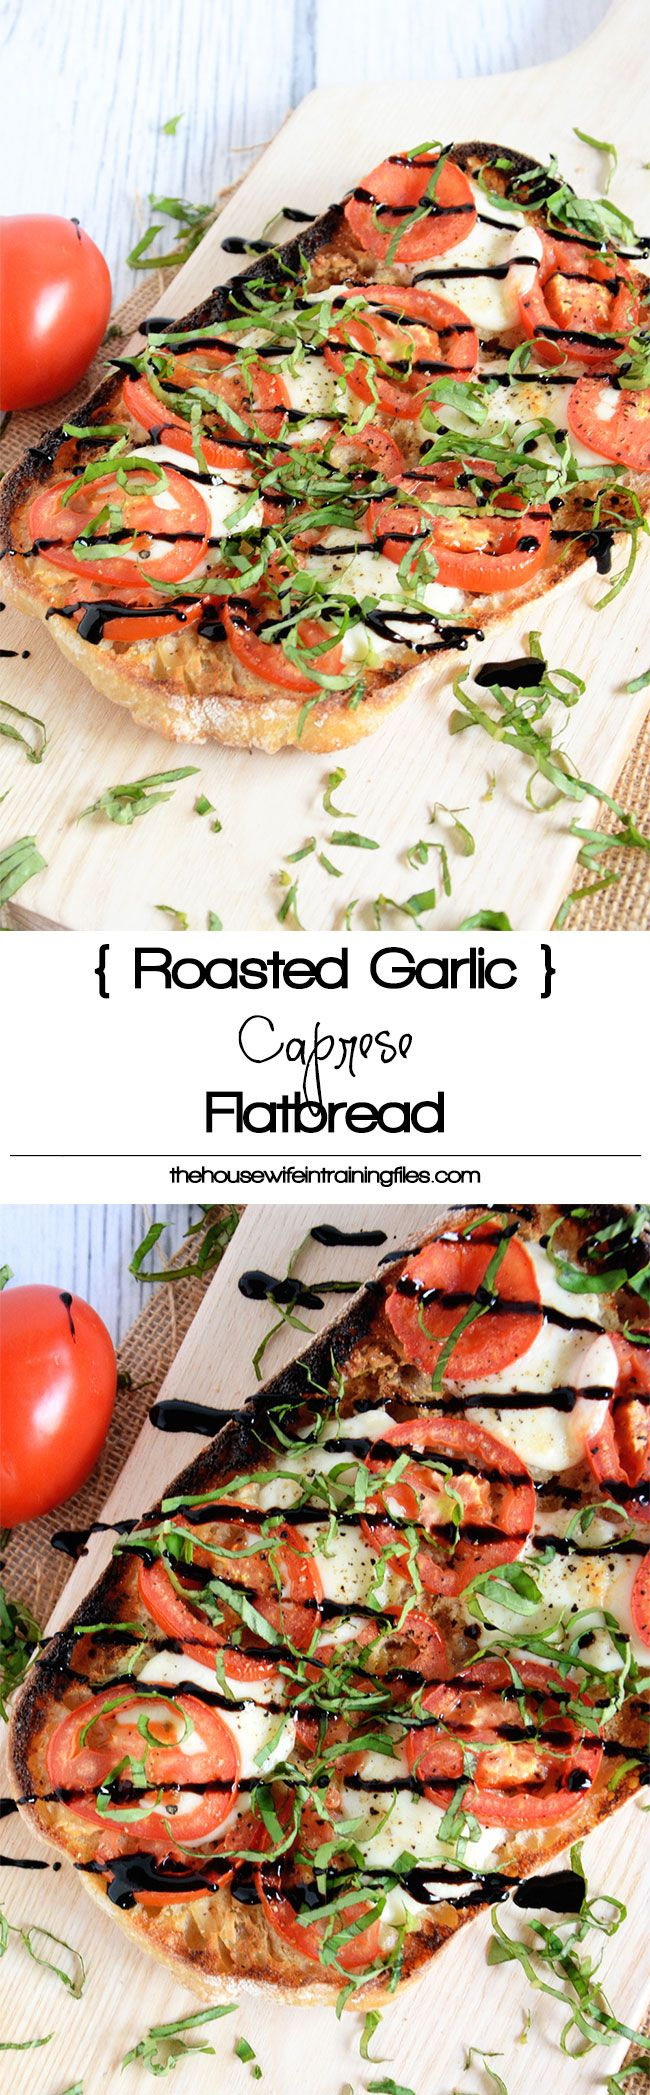 This Roasted Garlic Caprese Flatbread spices up with a loaf of Ciabatta with a roasted garlic spread, roma tomatoes, fresh mozzarella and a balsamic drizzle! A simple and quick dinner~♛